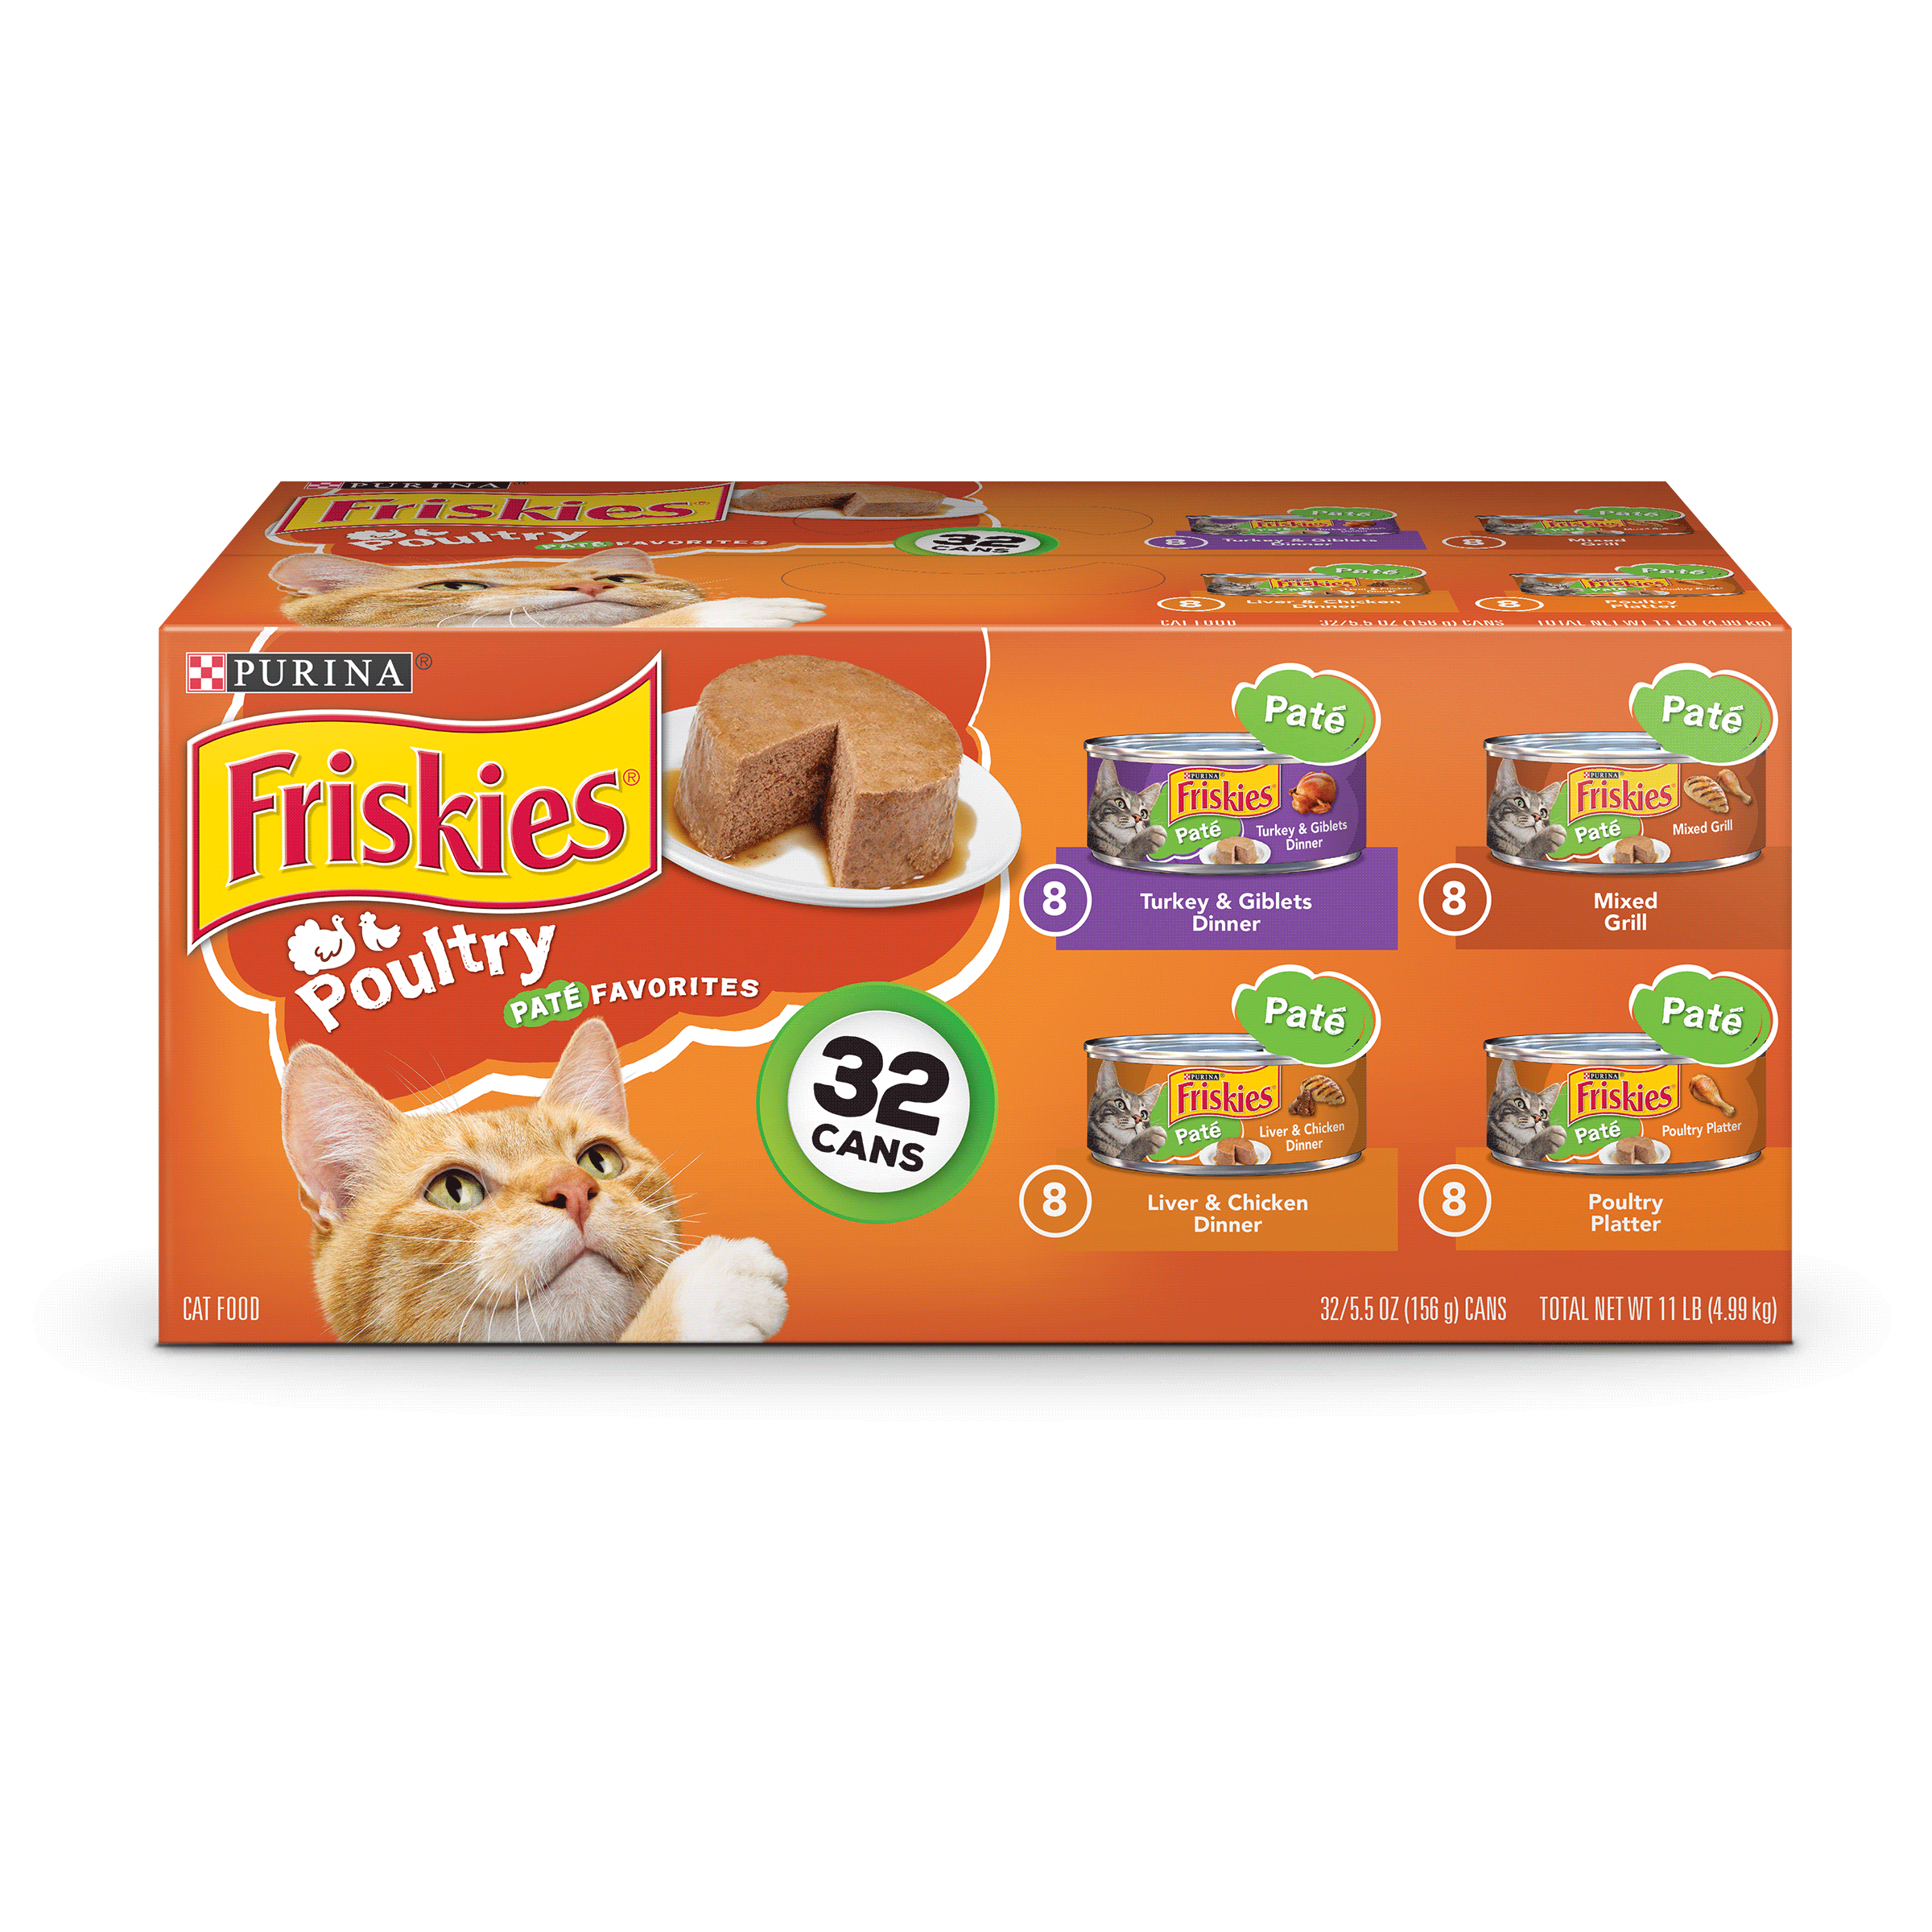 Purina Friskies Pate Poultry Favorites Adult Wet Cat Food Variety Pack - (32) 5.5 oz. Cans